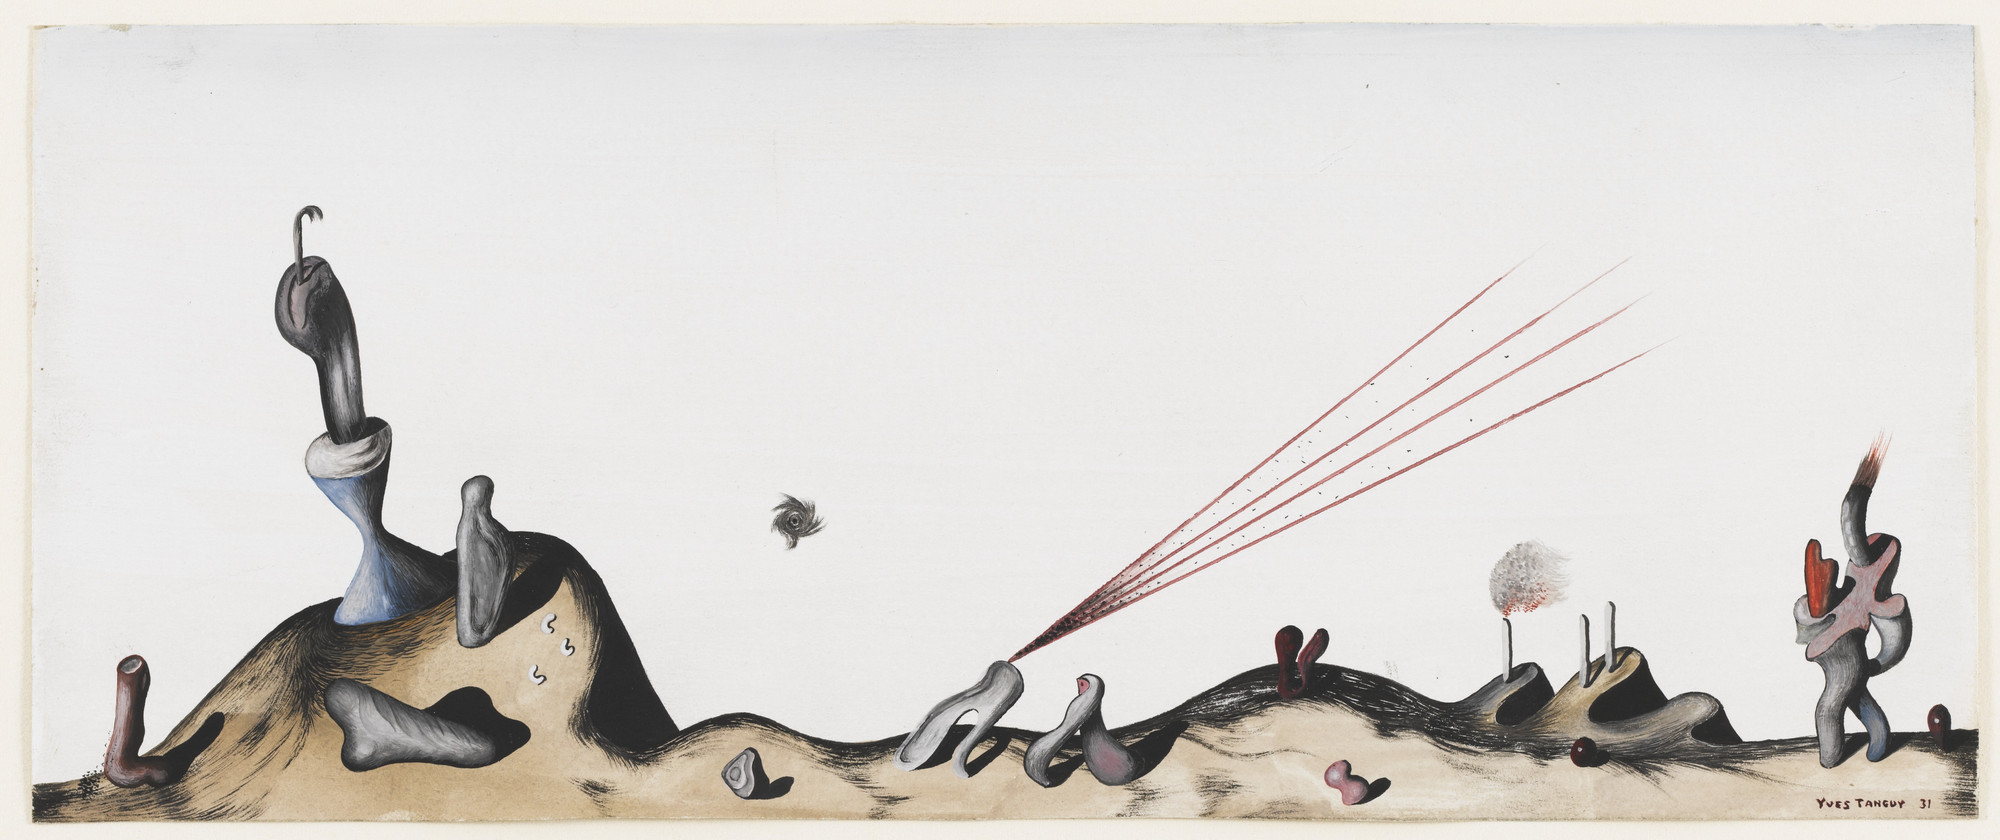 Yves Tanguy. Untitled. 1931